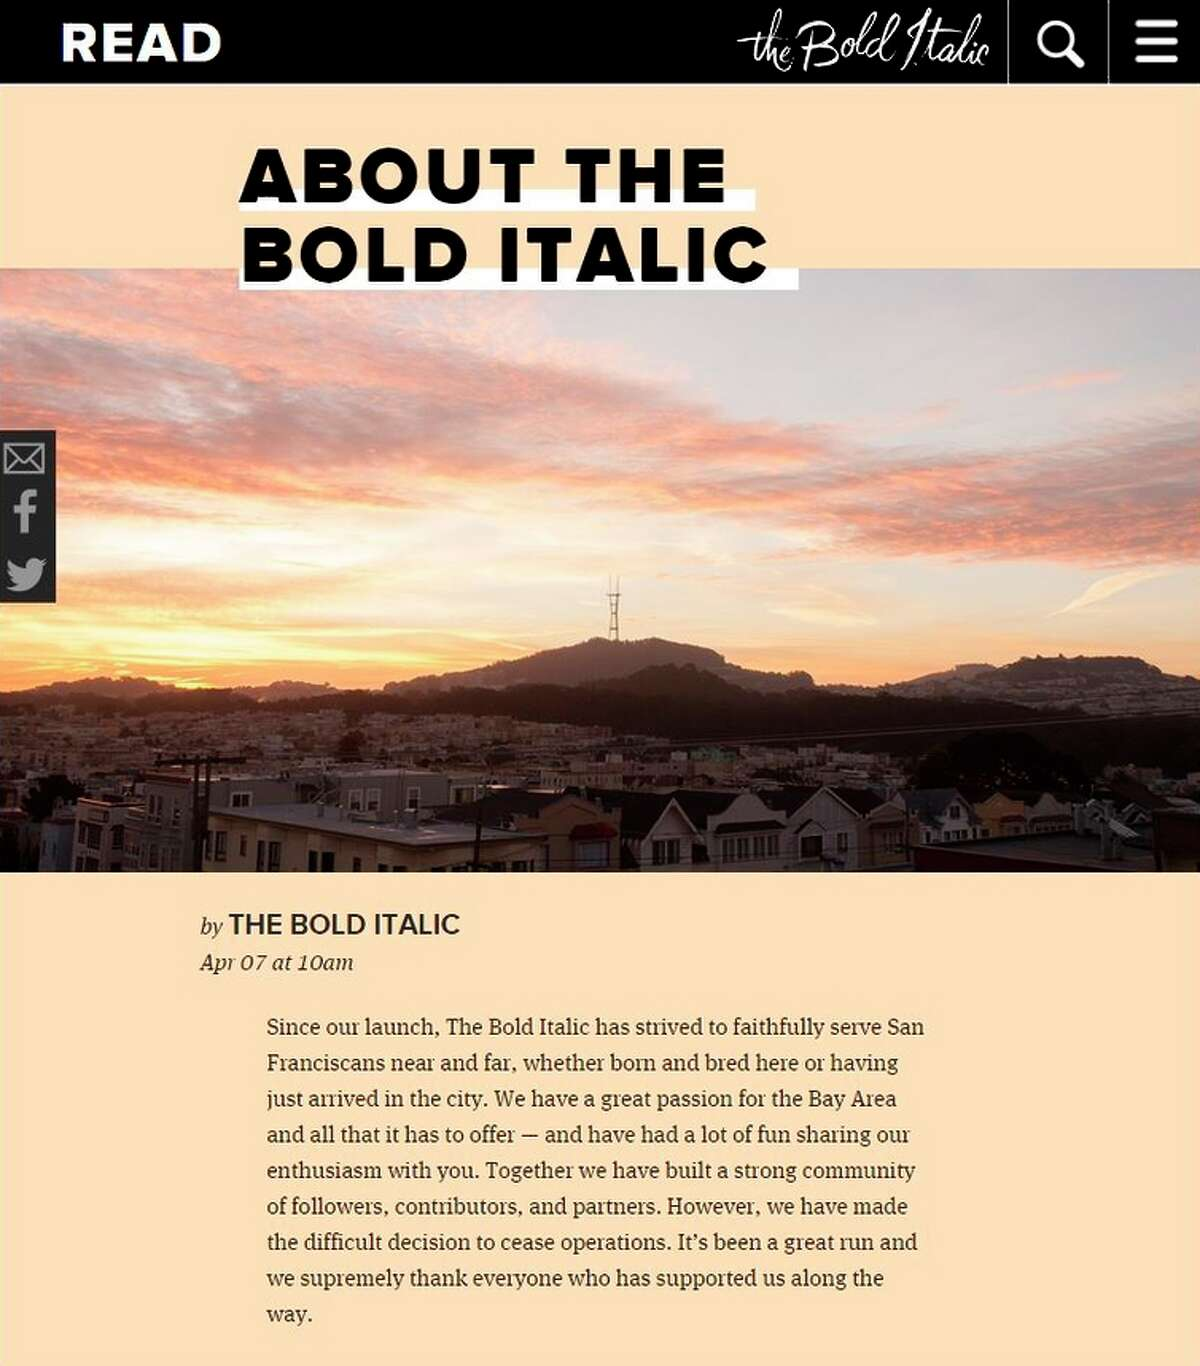 The Bold Italic, created by media giant Gannett, had plans to expand to other cities, but it never did.